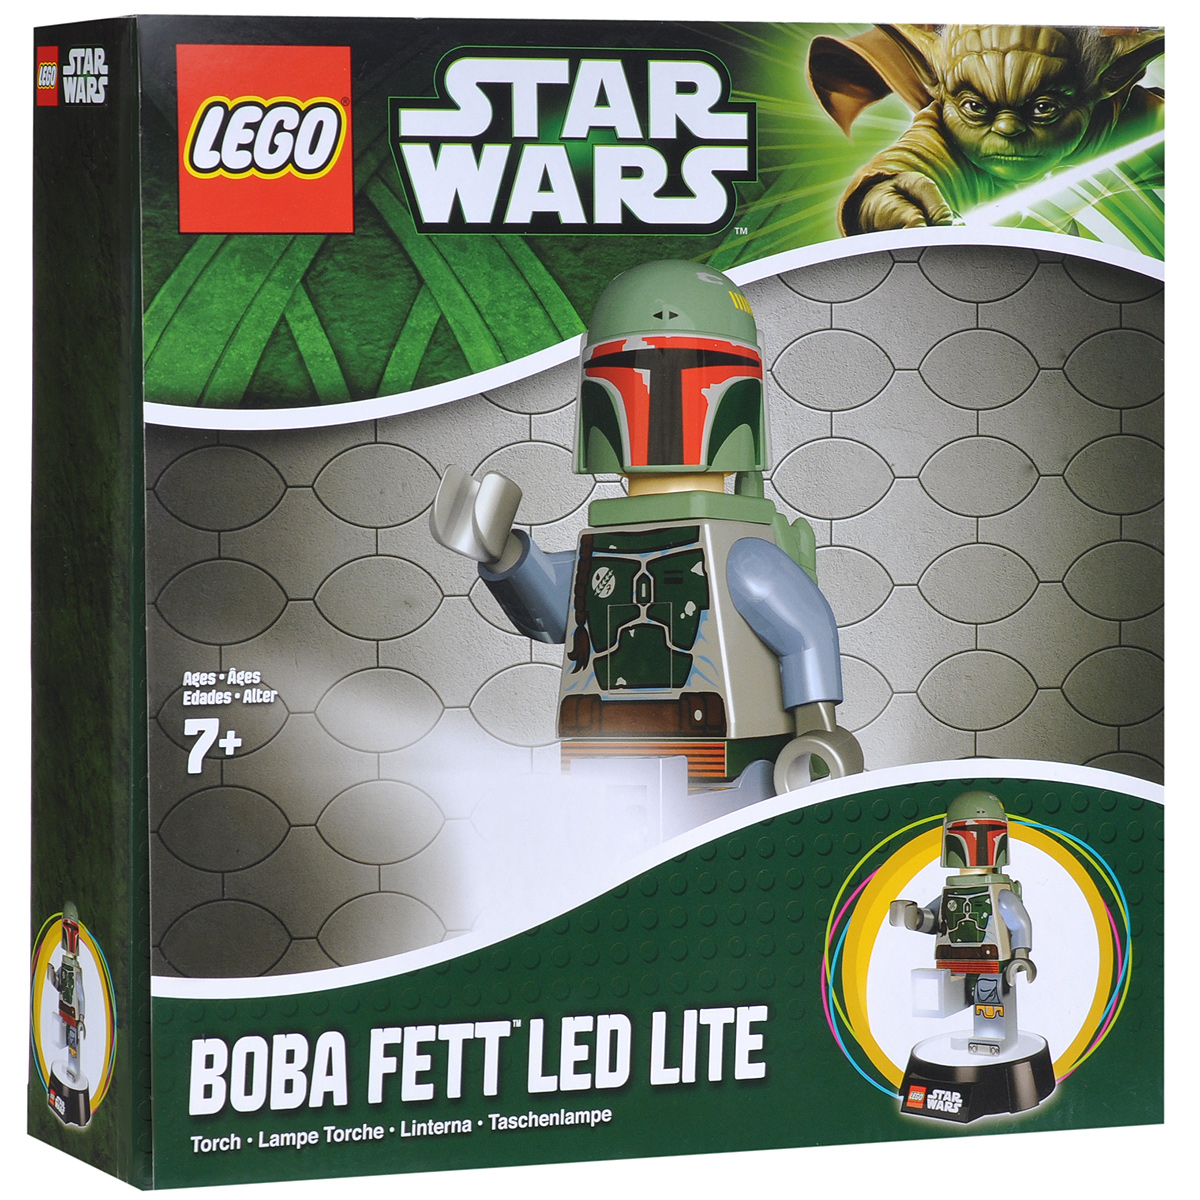 LEGO: Фонарик-ночник Star Wars: Boba Fett LGL-TOB8  funko pop star wars boba fett 08 pvc action figure collectible model toy 12cm fkfg126 retail box sp050